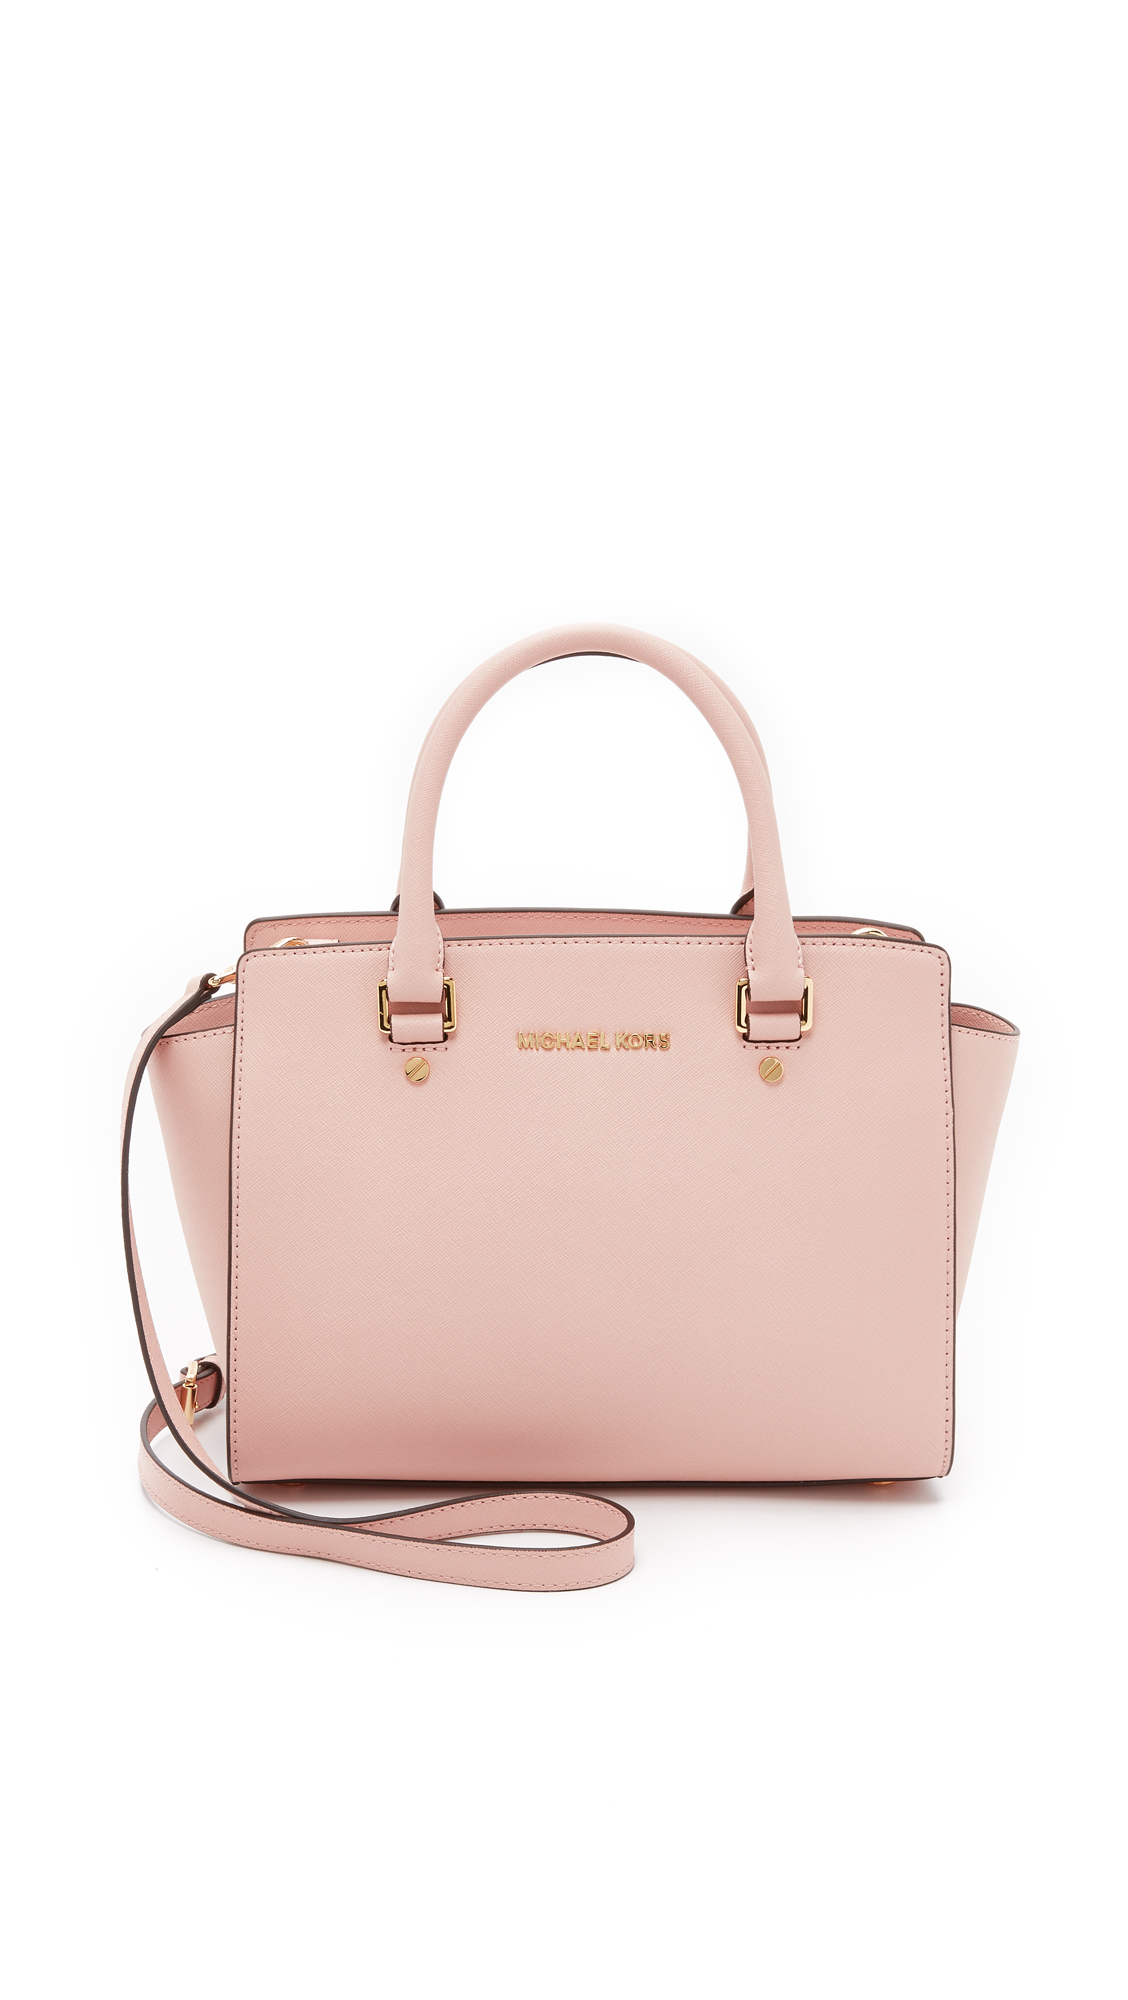 Gallery Previously Sold At Bop Women S Michael By Kors Selma